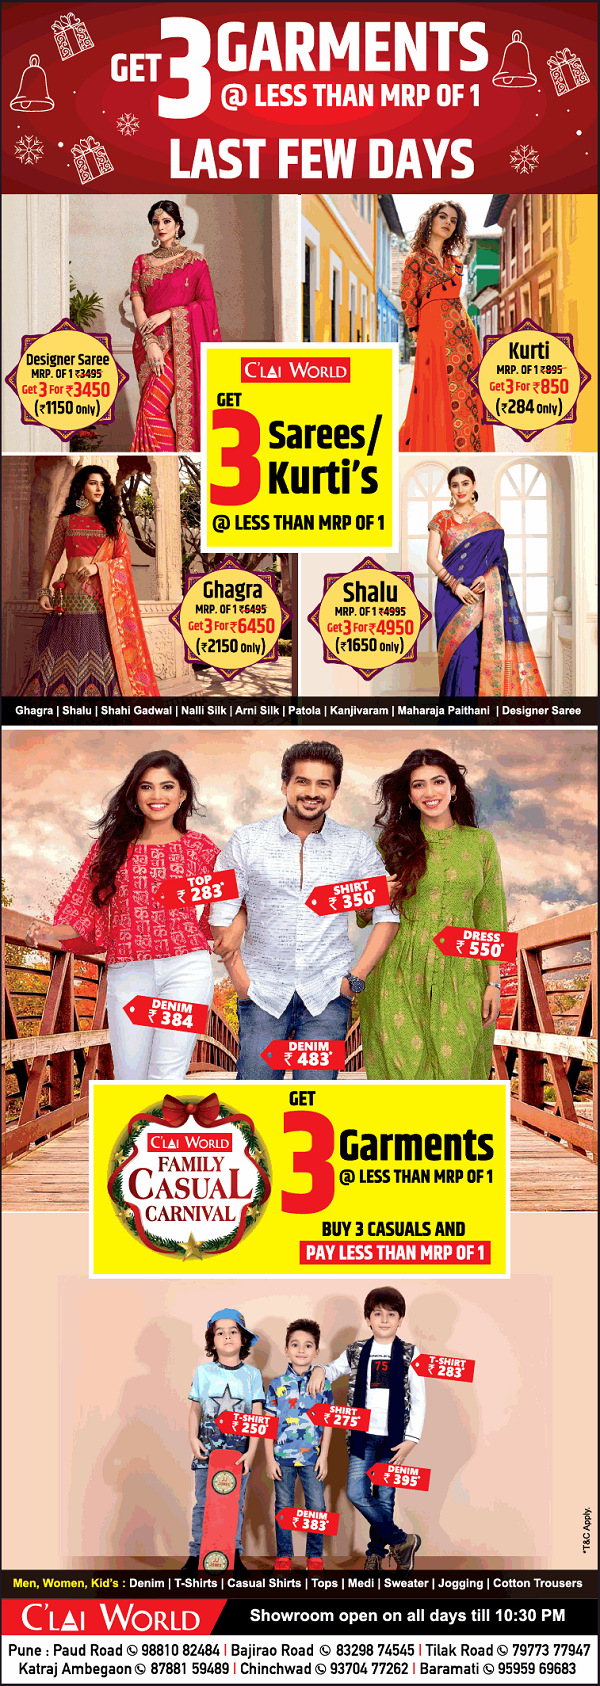 Clai World offers India